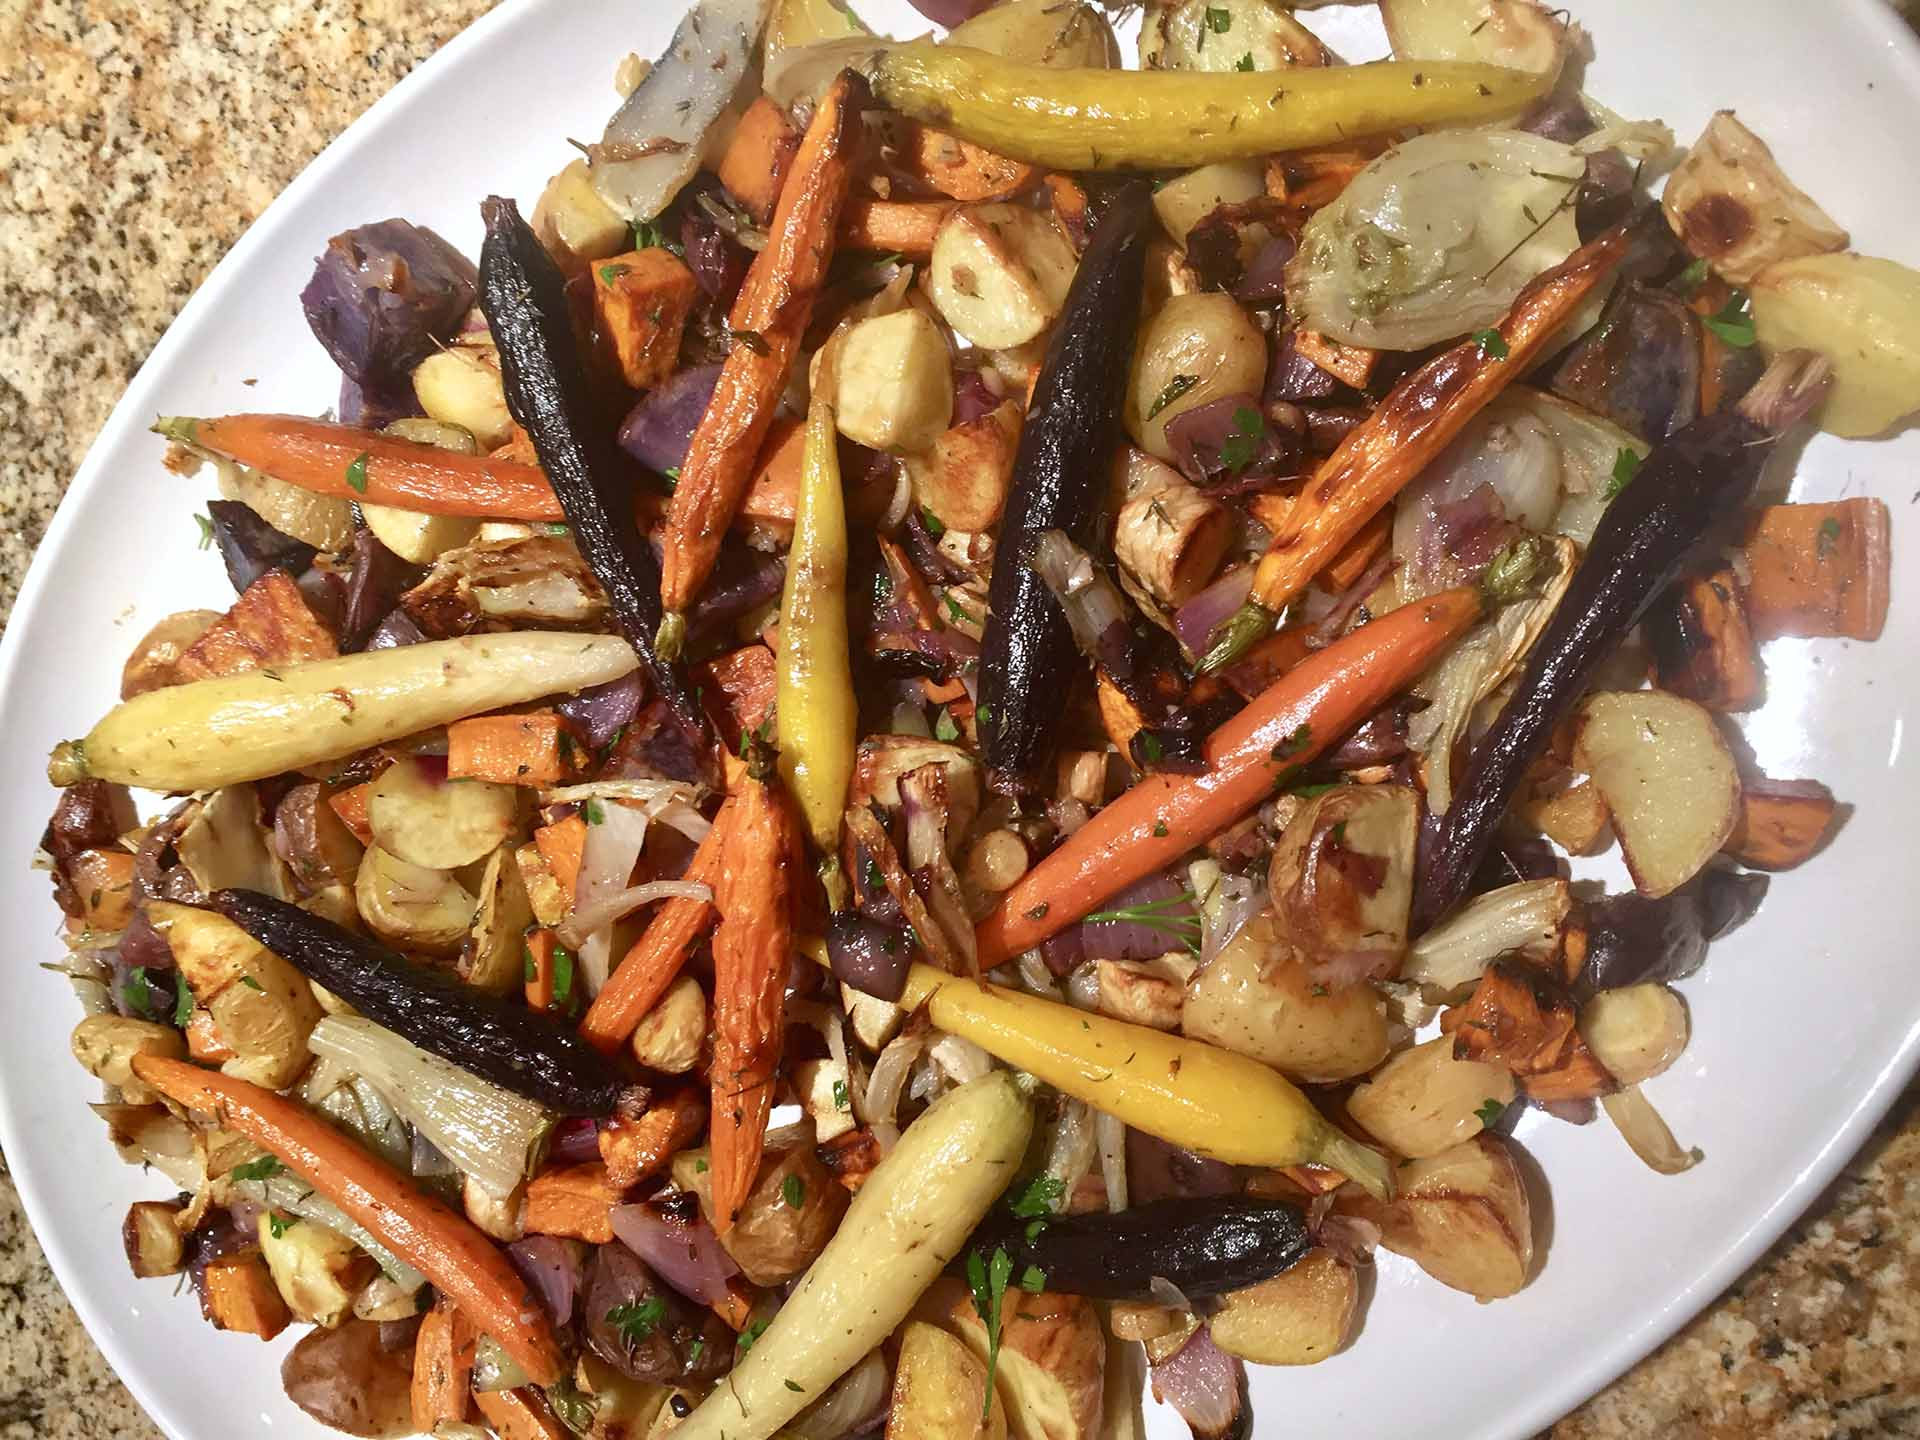 roasted-root-veggies.jpg